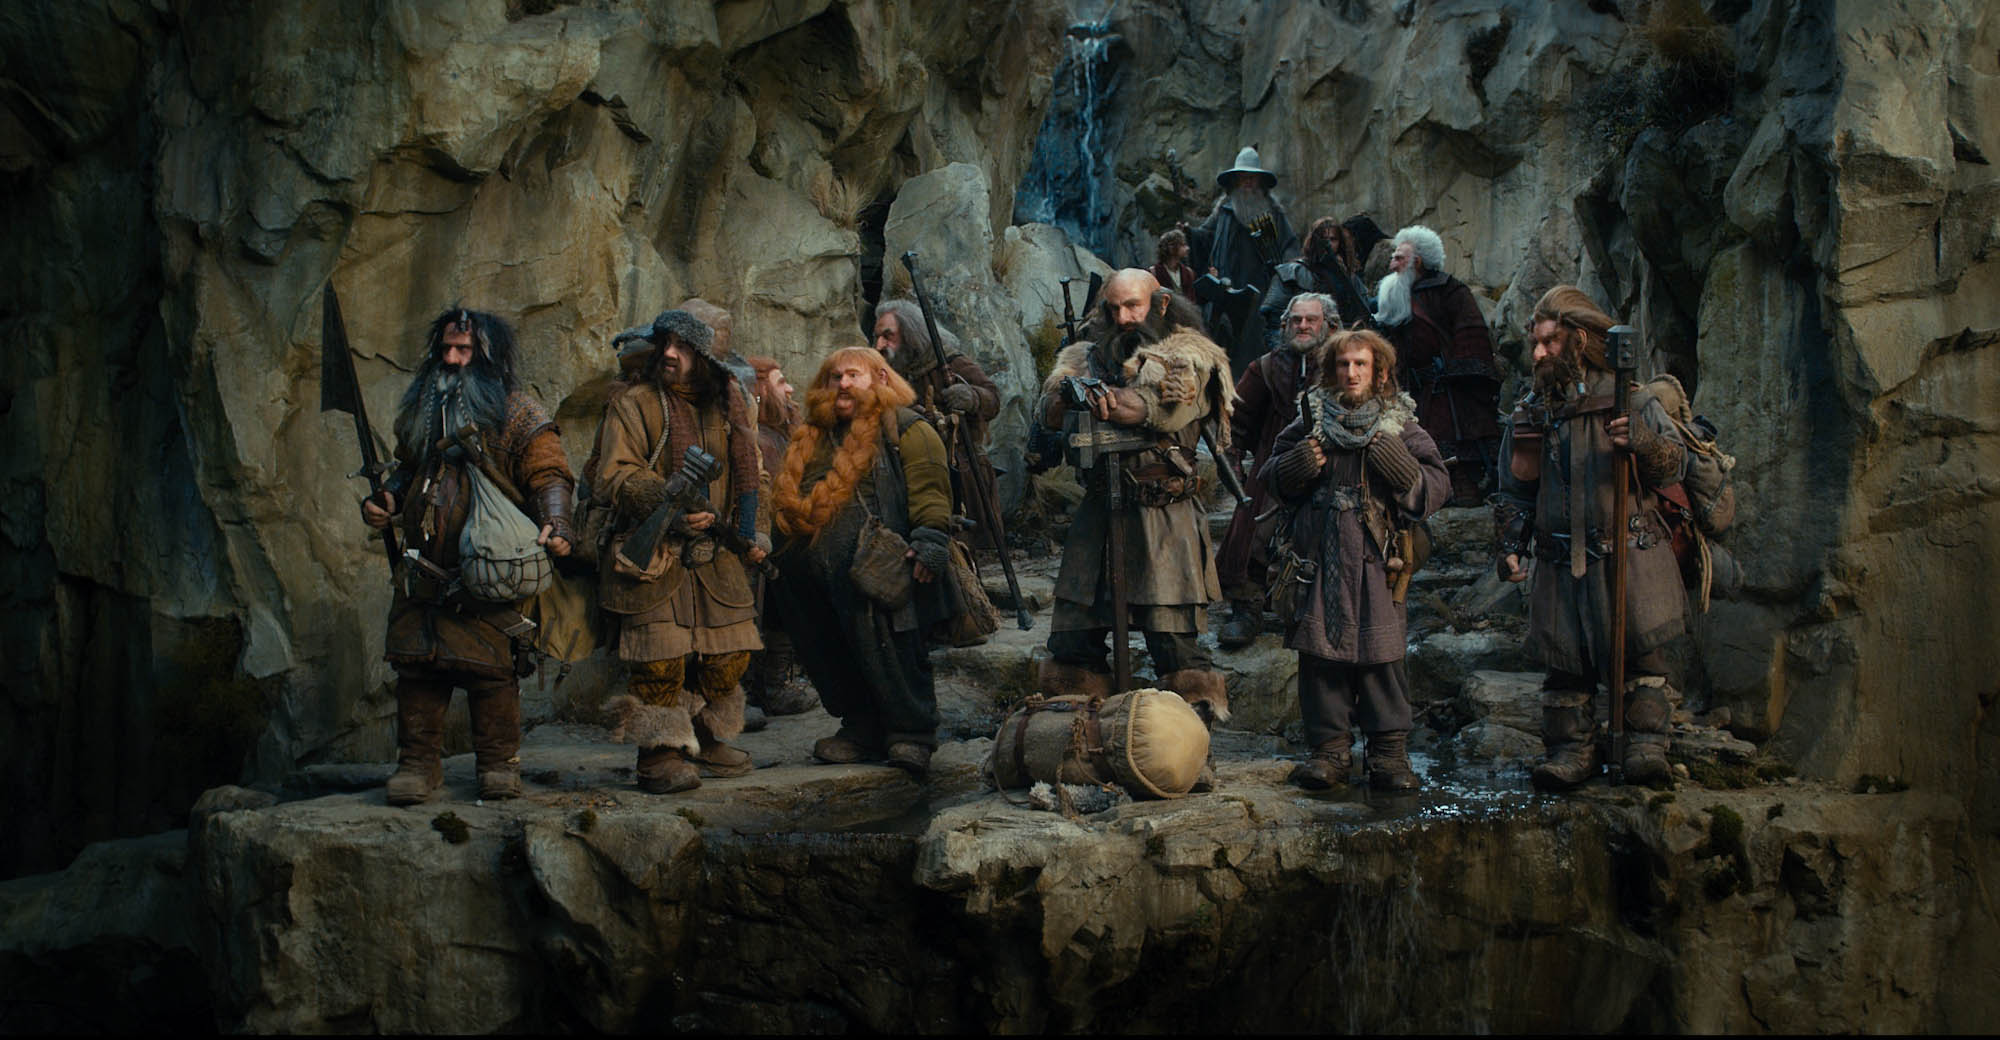 The hobbit an unexpected journey blackfilm com read blackfilm com